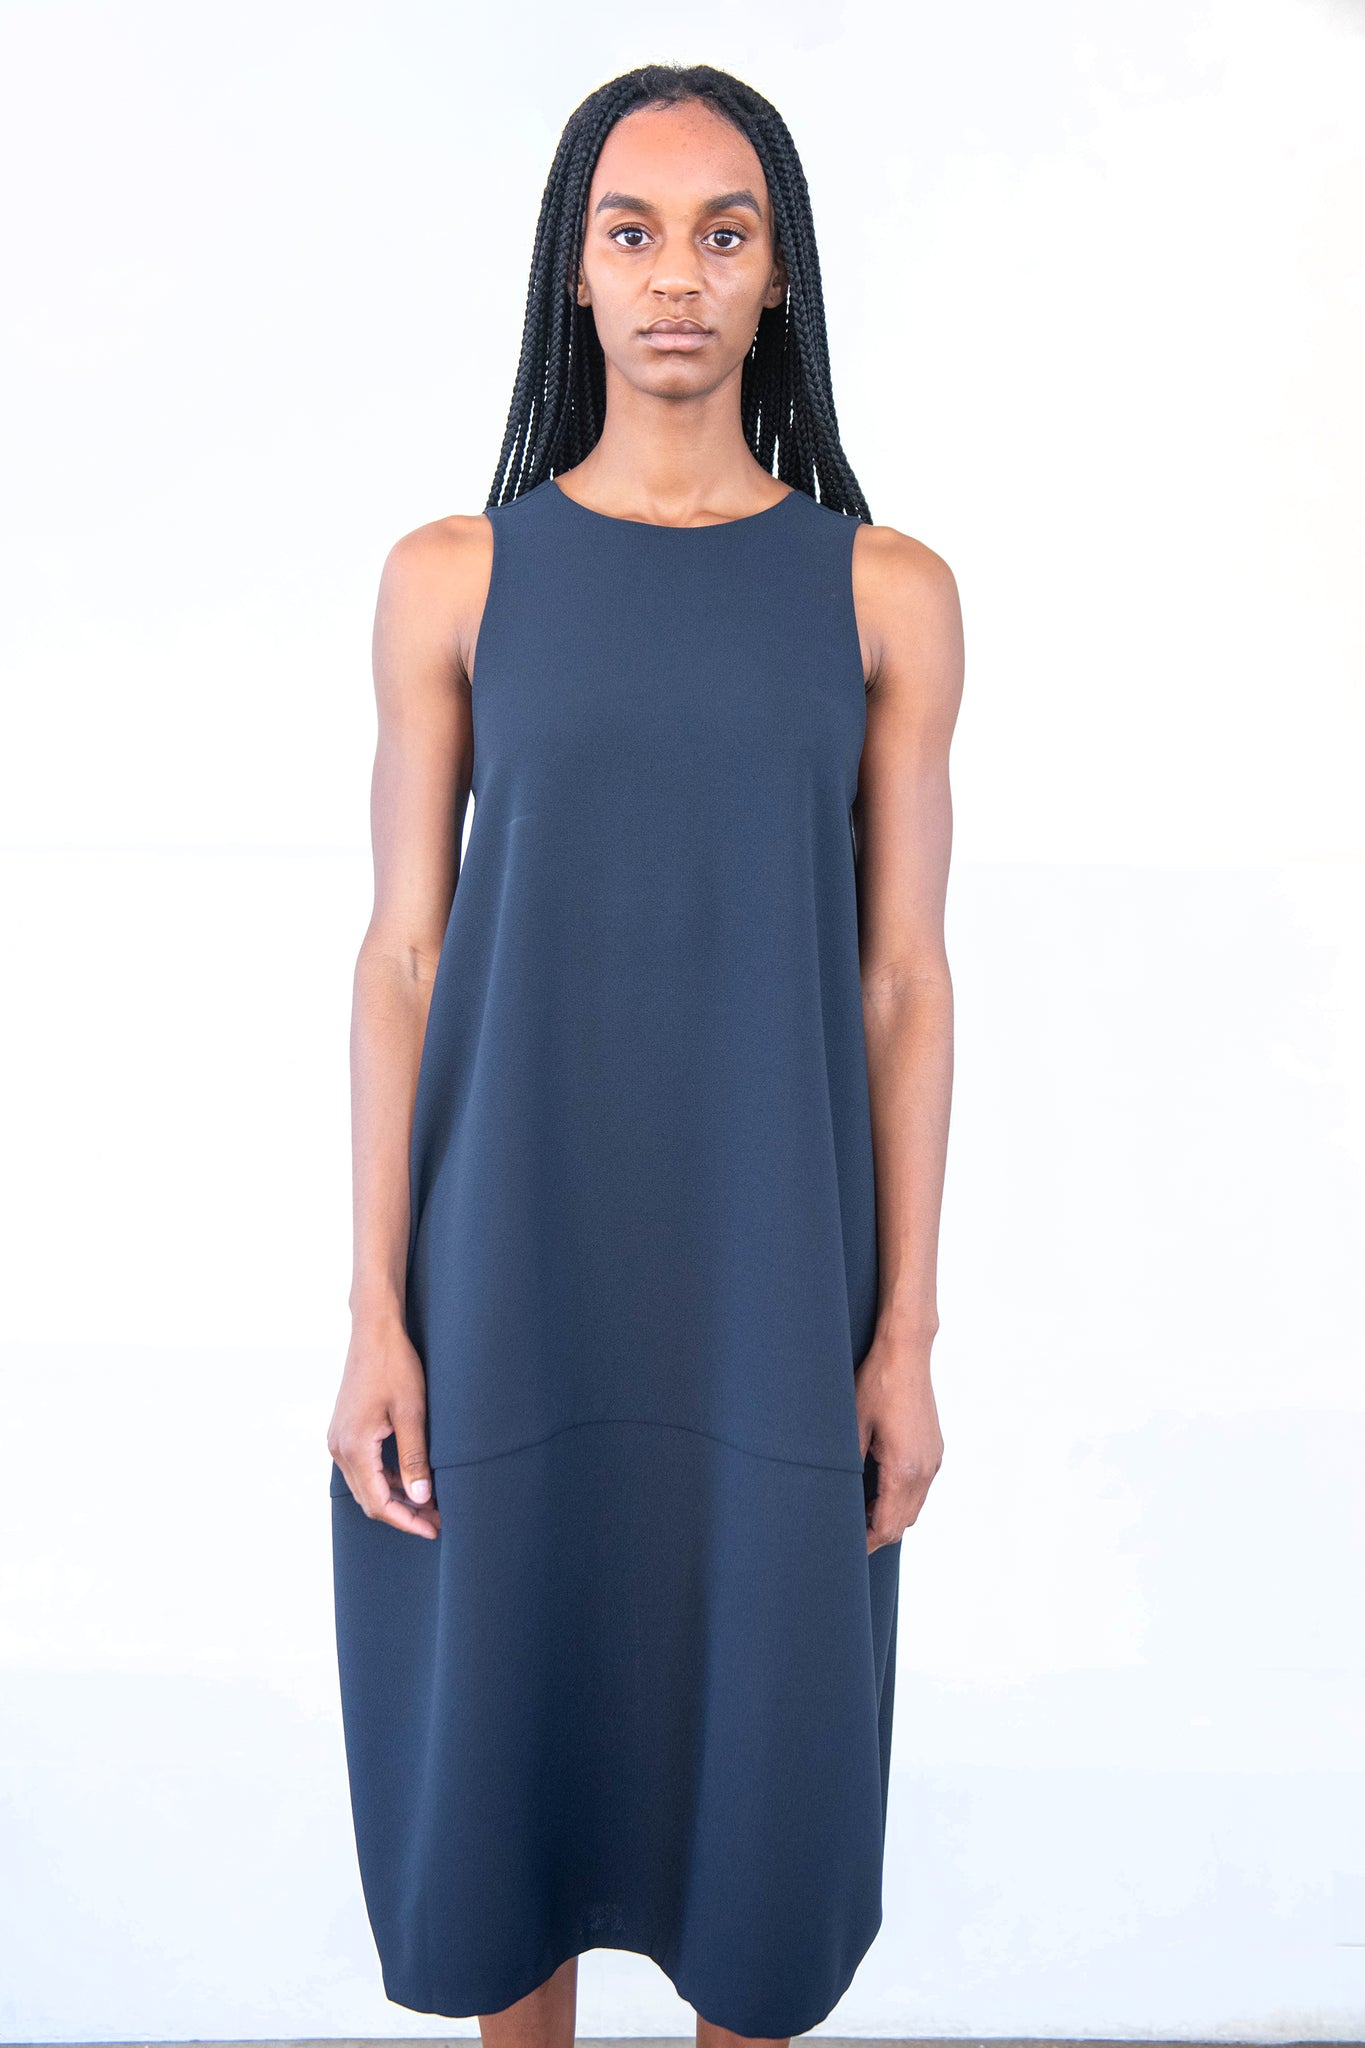 KAAREM - jar back v panel dress, black blue